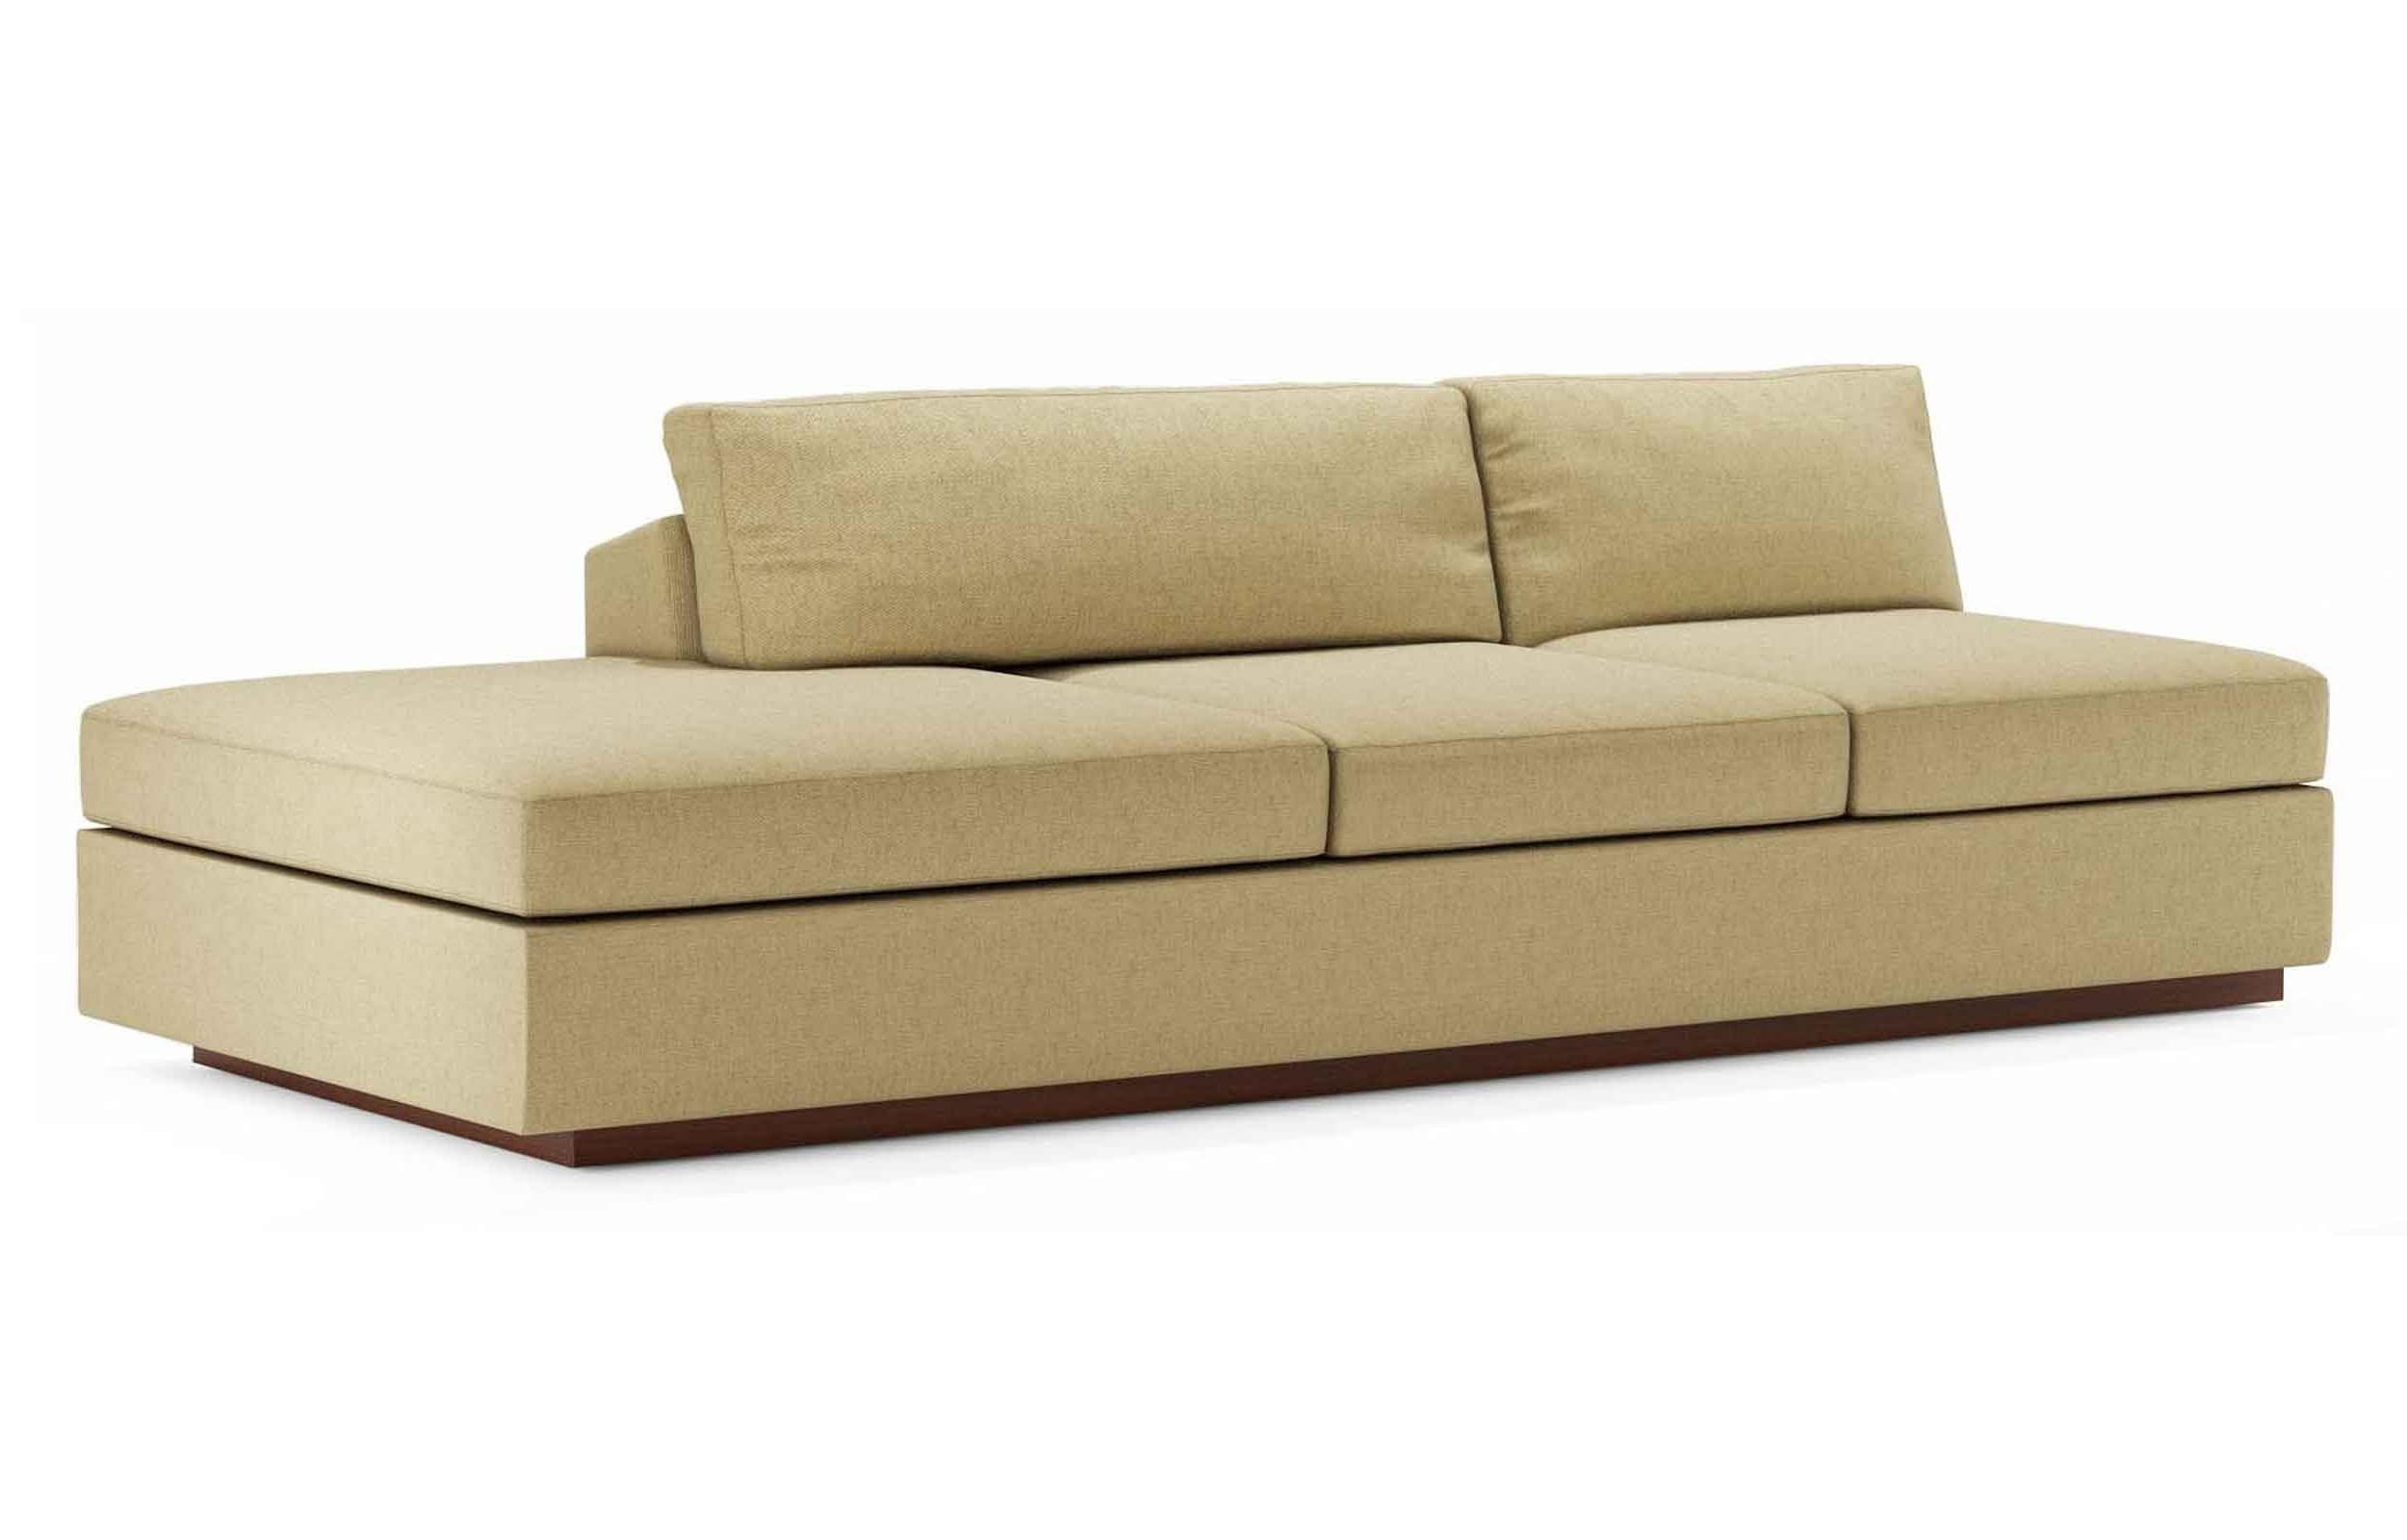 armless sofas rv sofa beds manufacturers 20 best small ideas